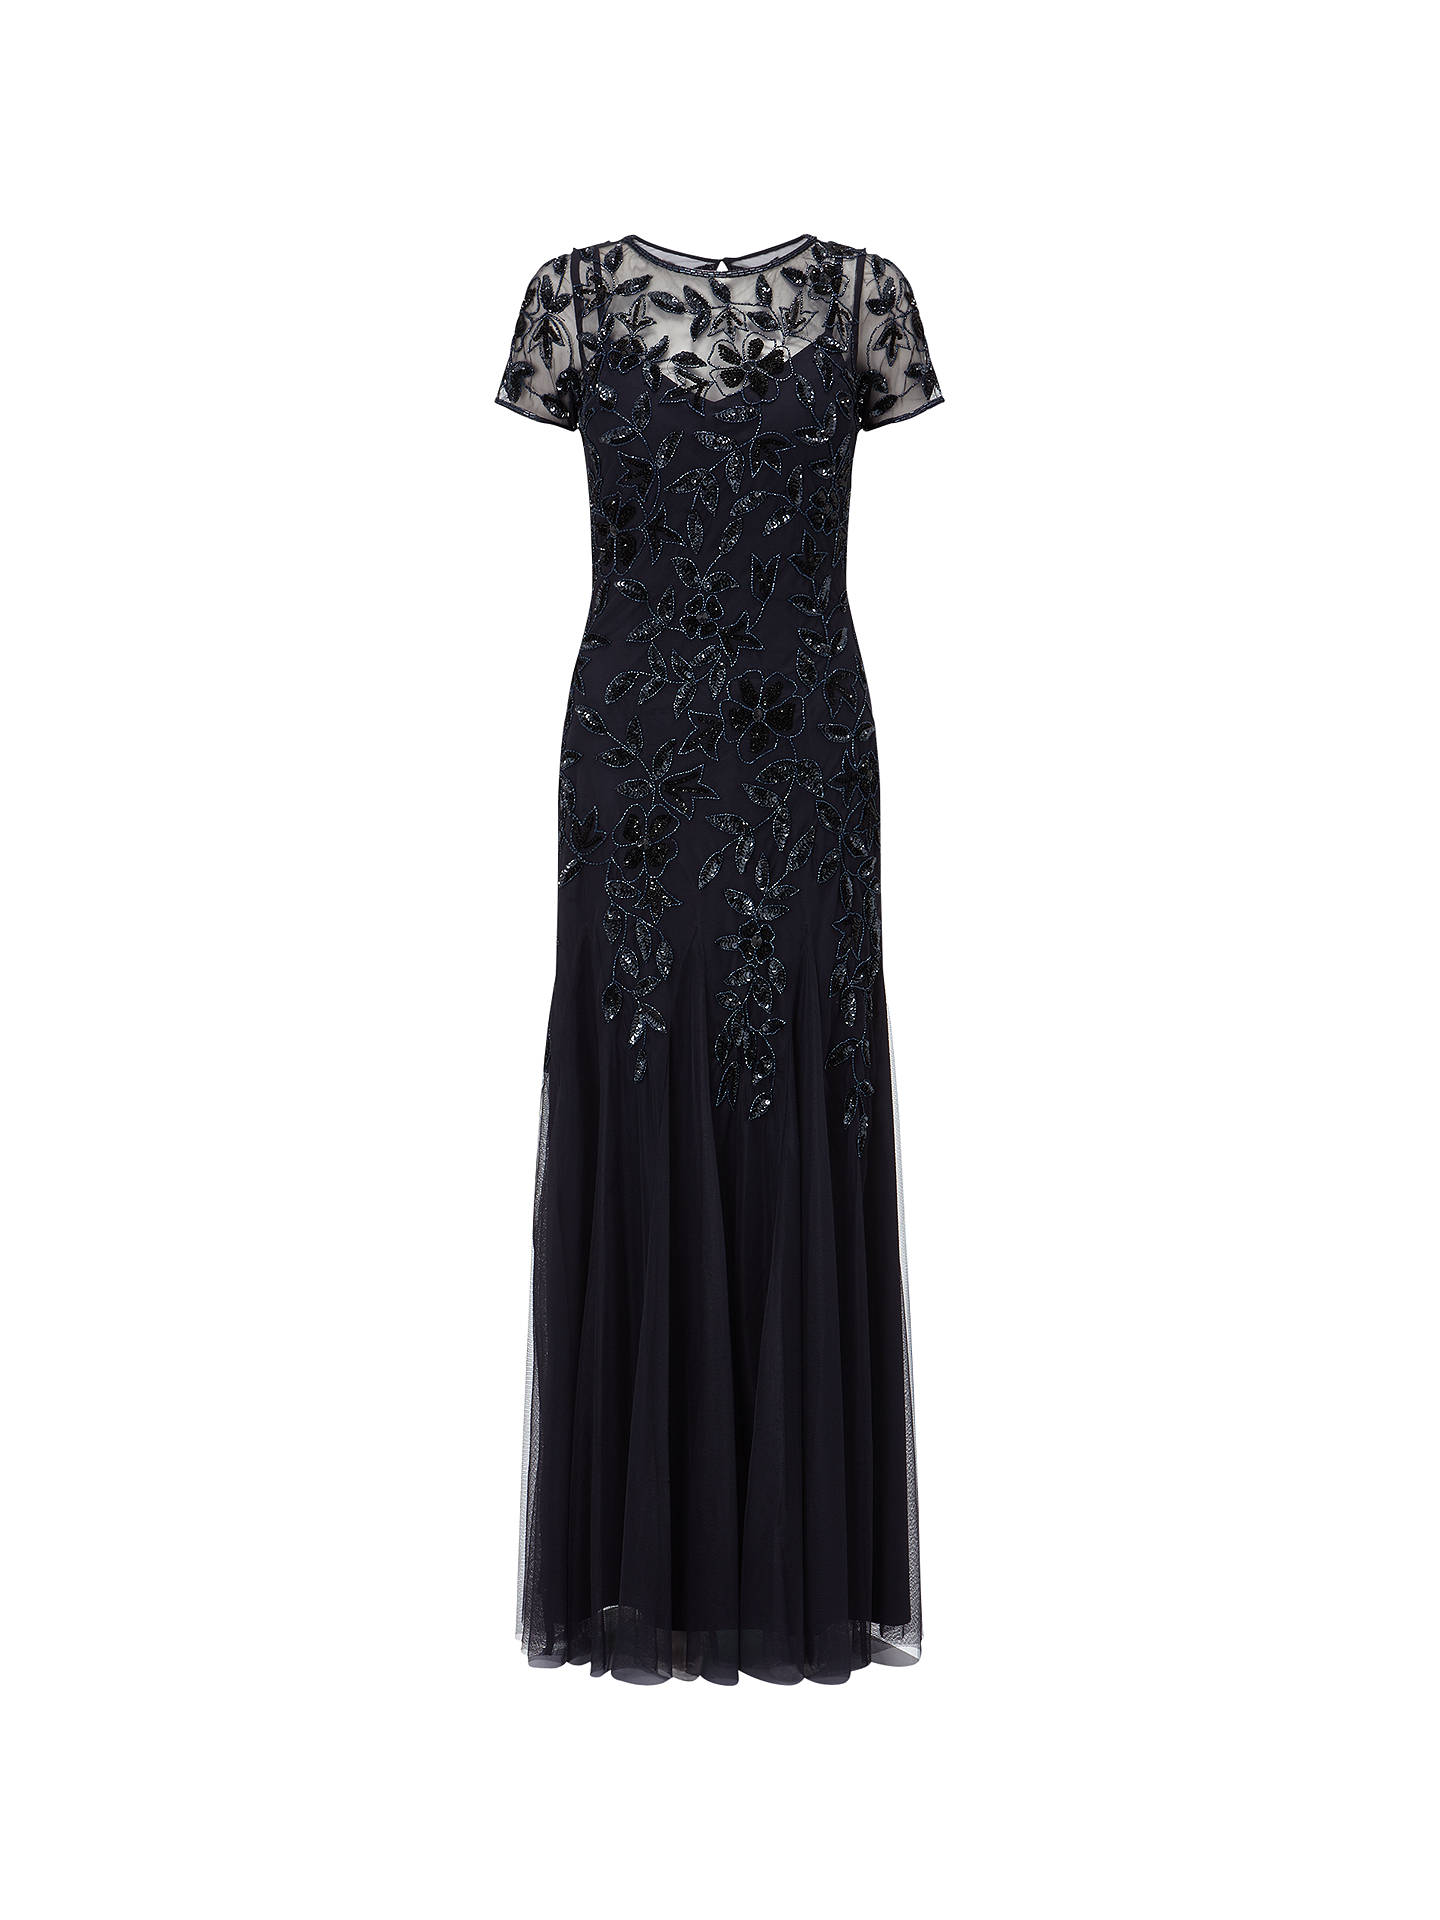 1afec961b428 Buy Adrianna Papell Floral Beaded Gown, Twilight, 14 Online at  johnlewis.com ...